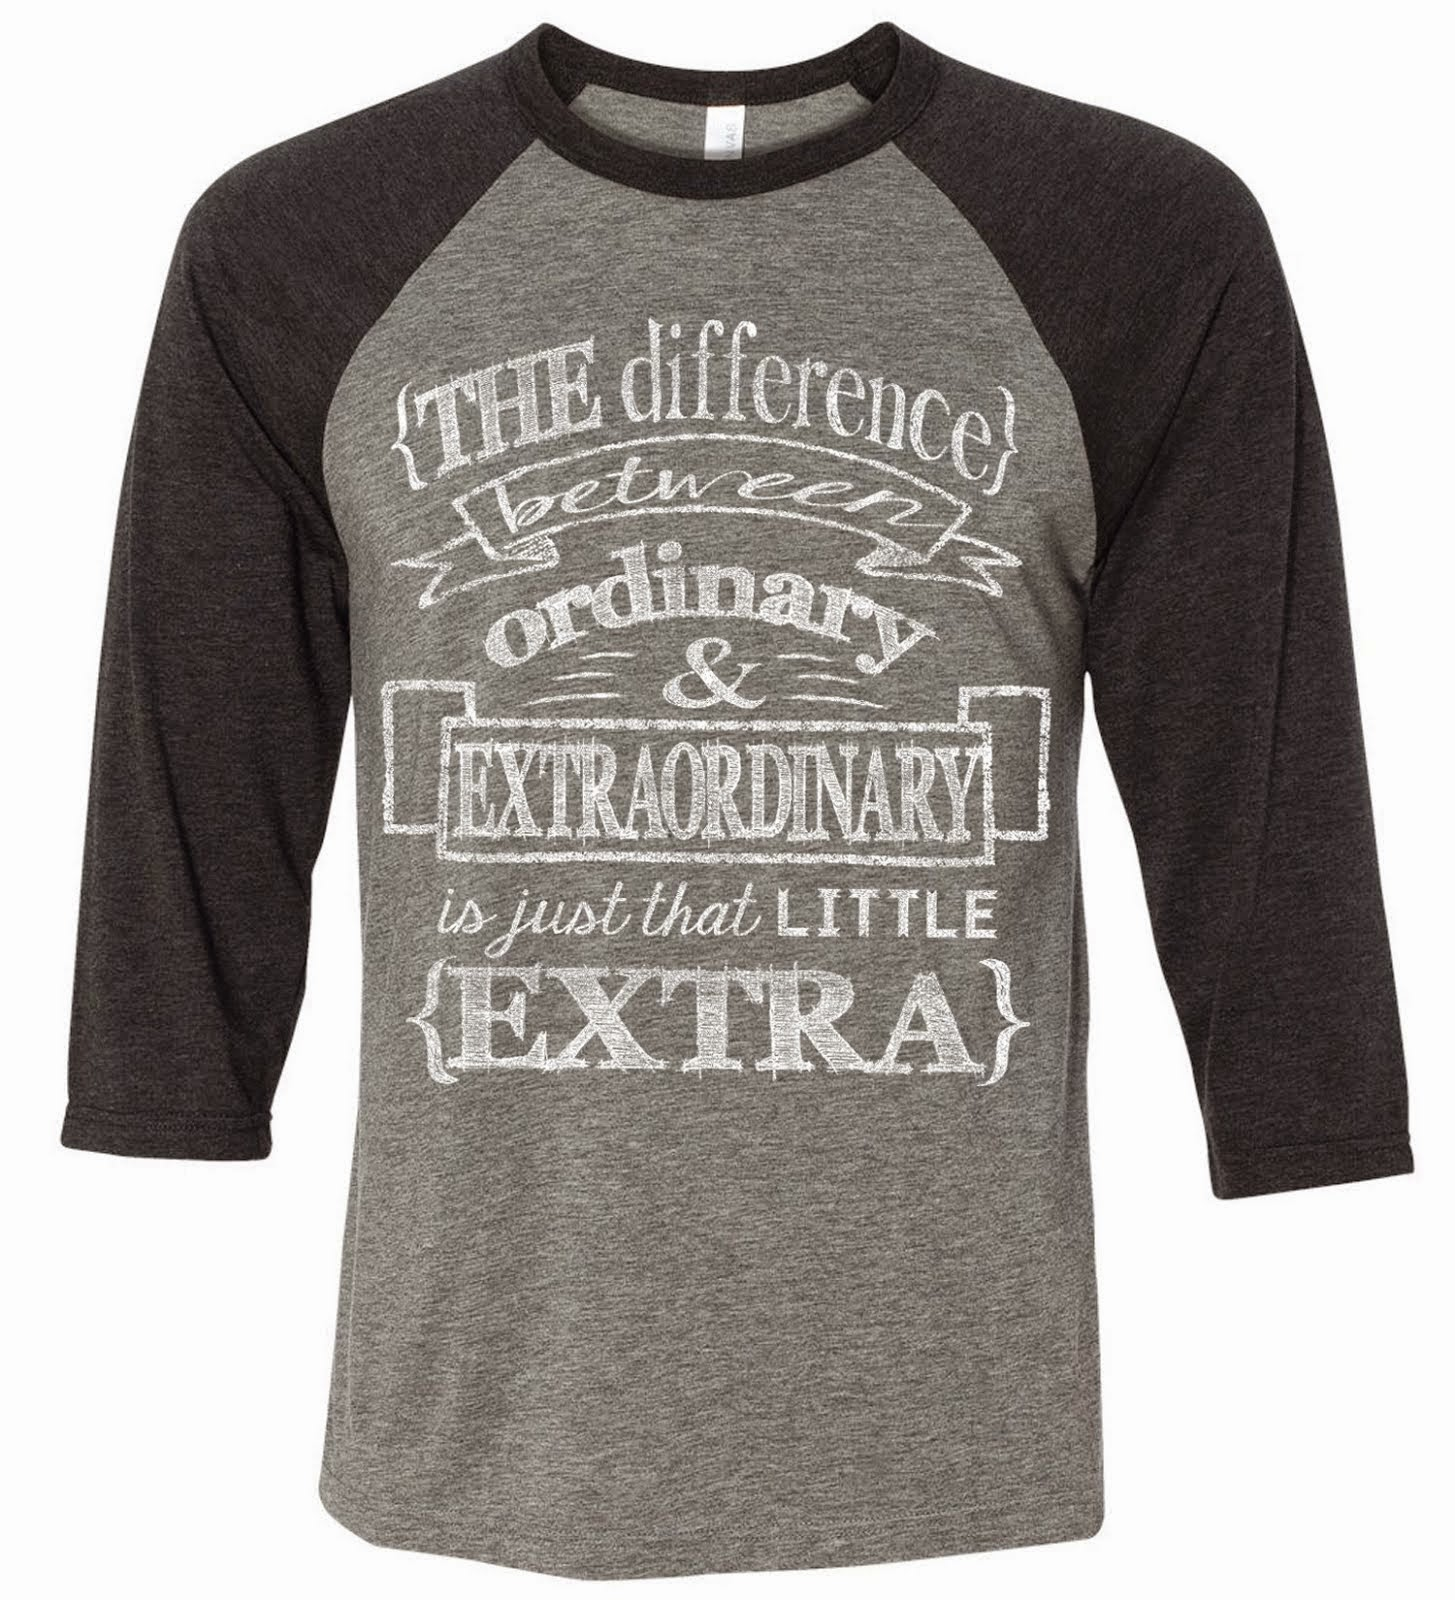 Extraordinary Grey/Charcoal Triblend Raglan